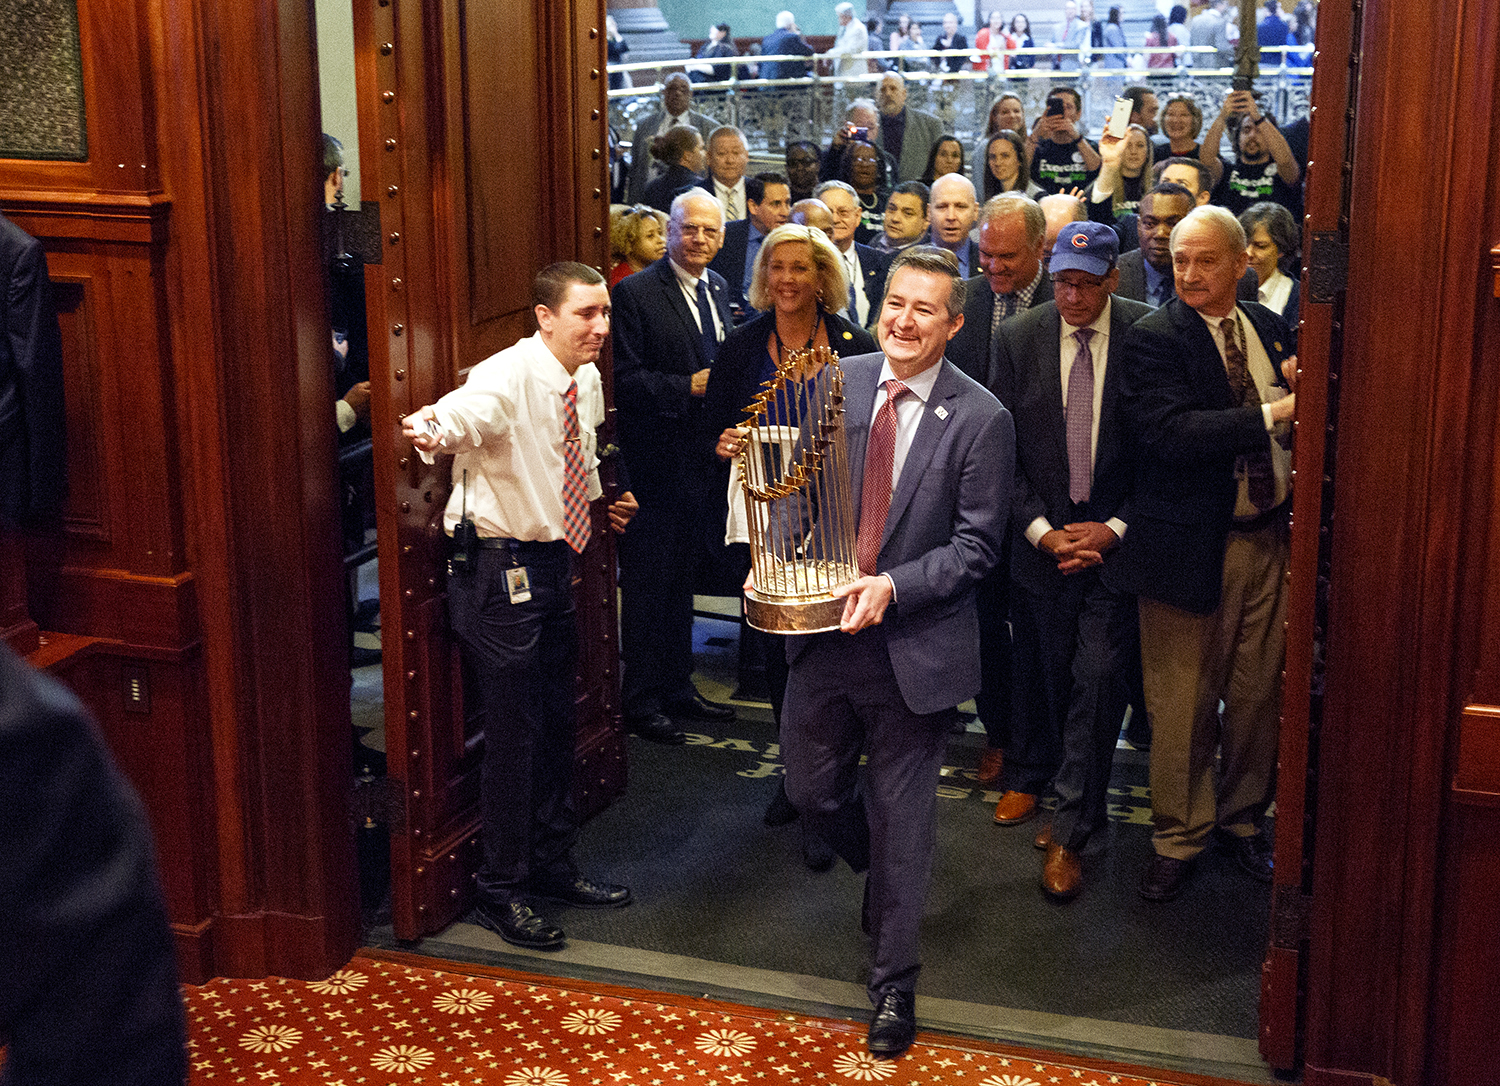 Chicago Cubs Chairman Tom Ricketts carries the Cubs' World Series trophy into the House chamber March 8 at the Capitol. The World Champion Chicago Cubs were honored during a joint session of the General Assembly. Rich Saal/The State Journal-Register